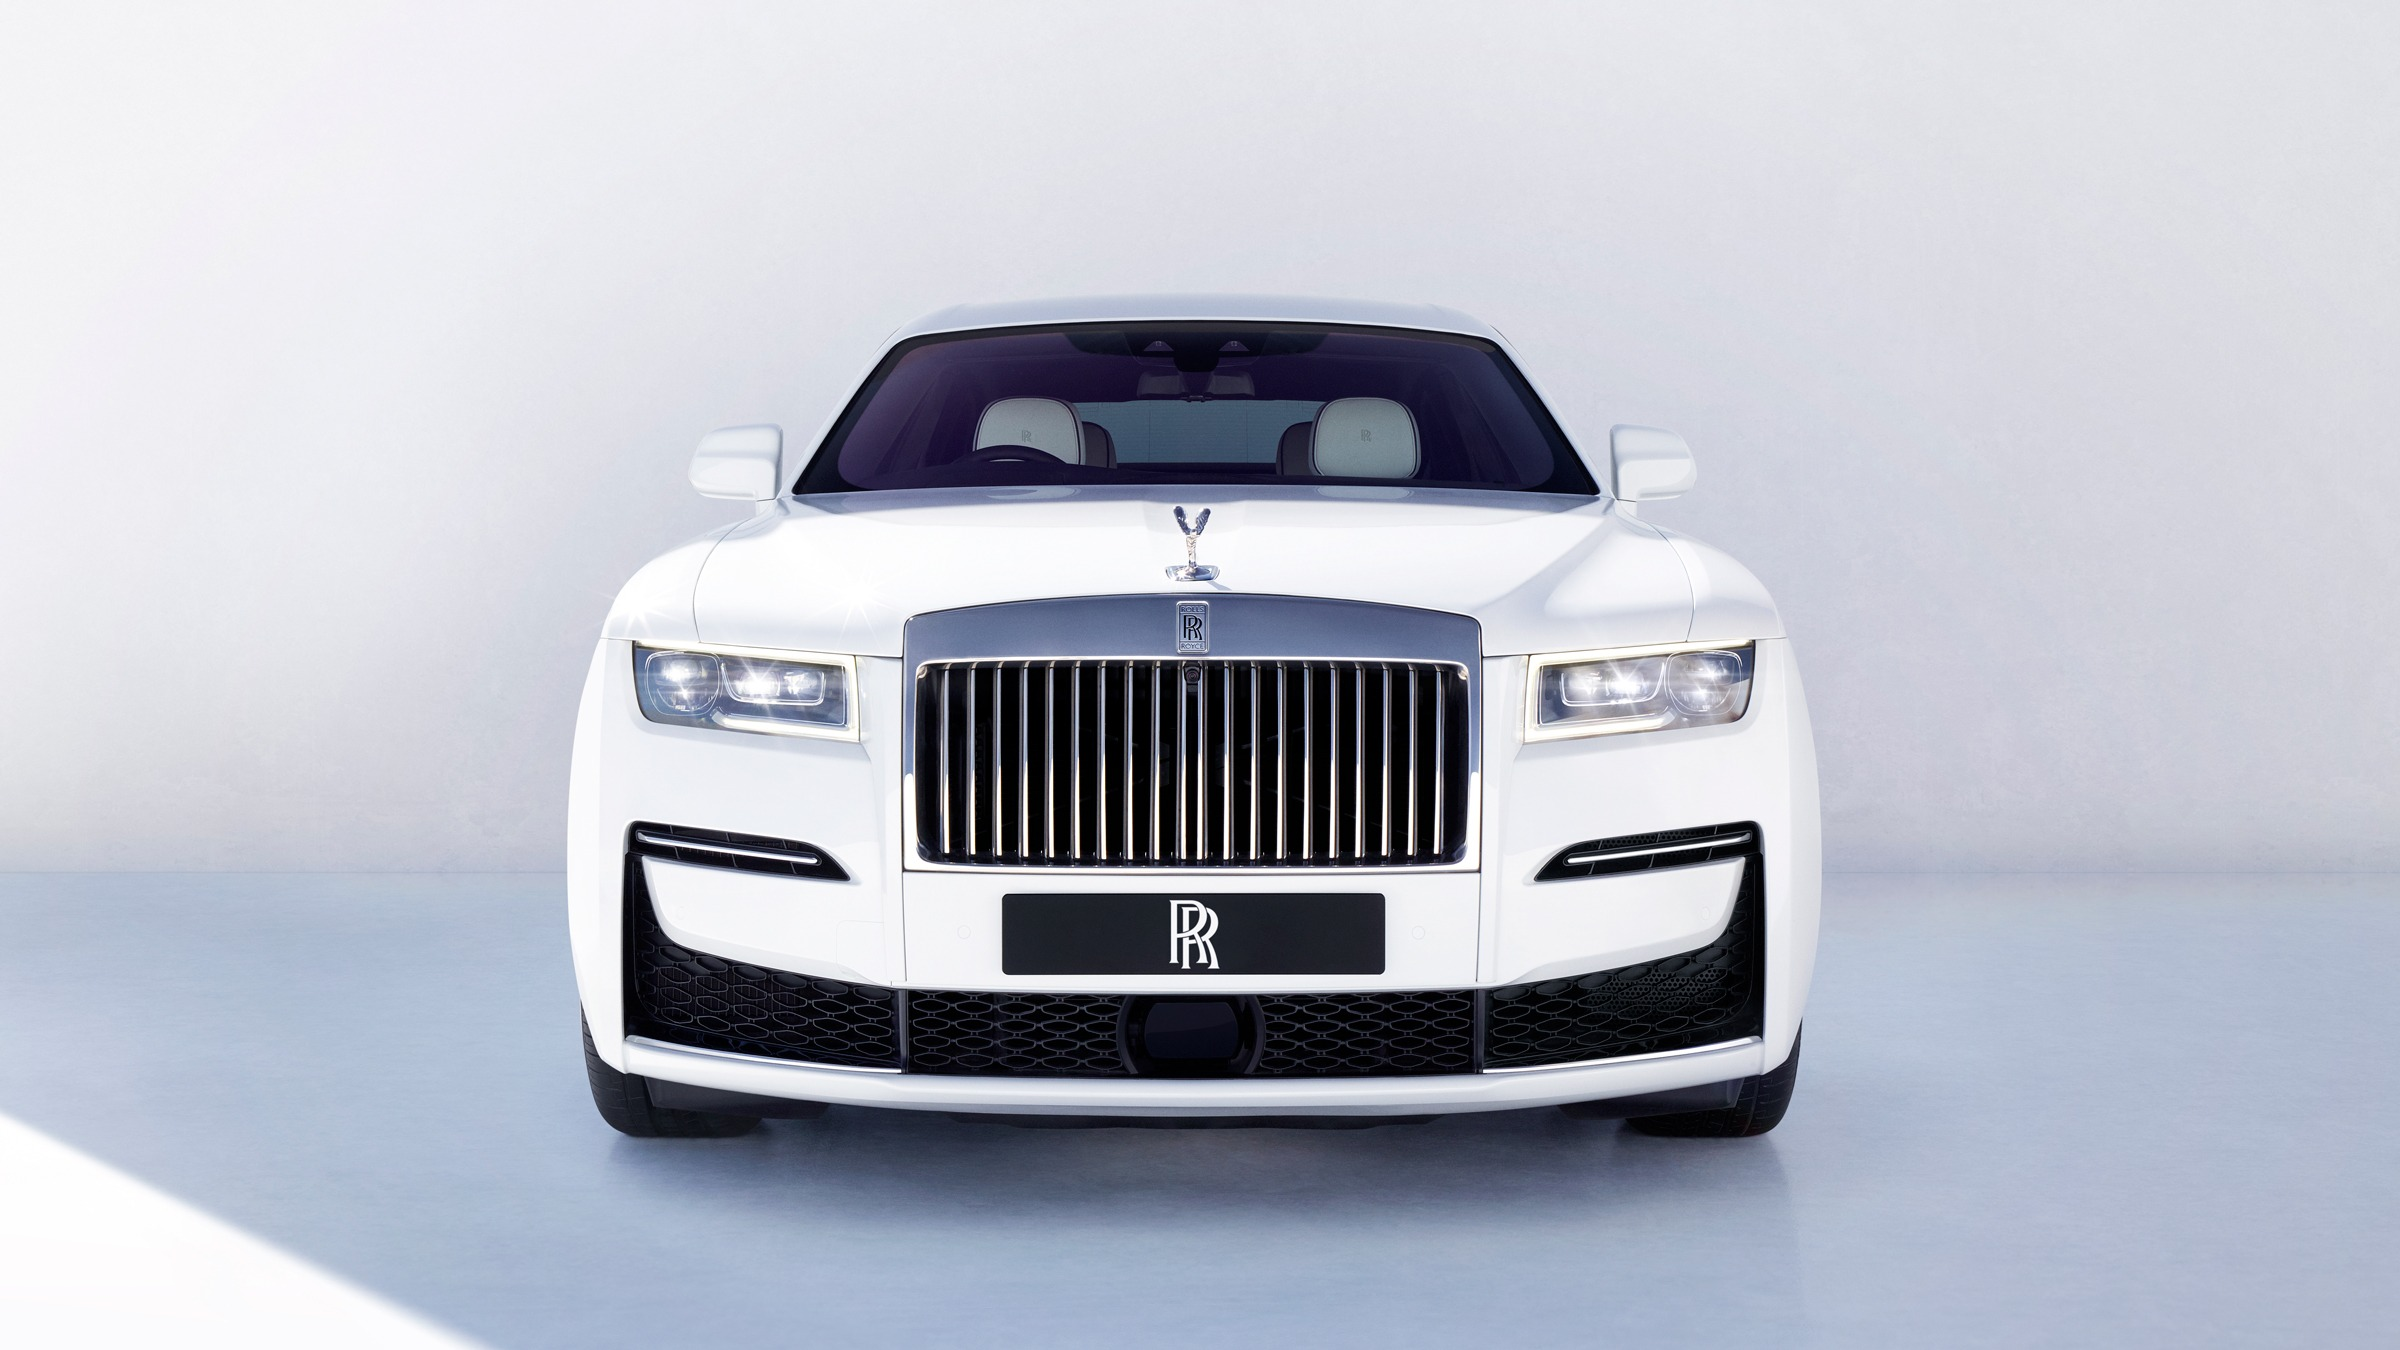 The New Rolls Royce Ghost A Car For The Post Opulent Generation Financial Times